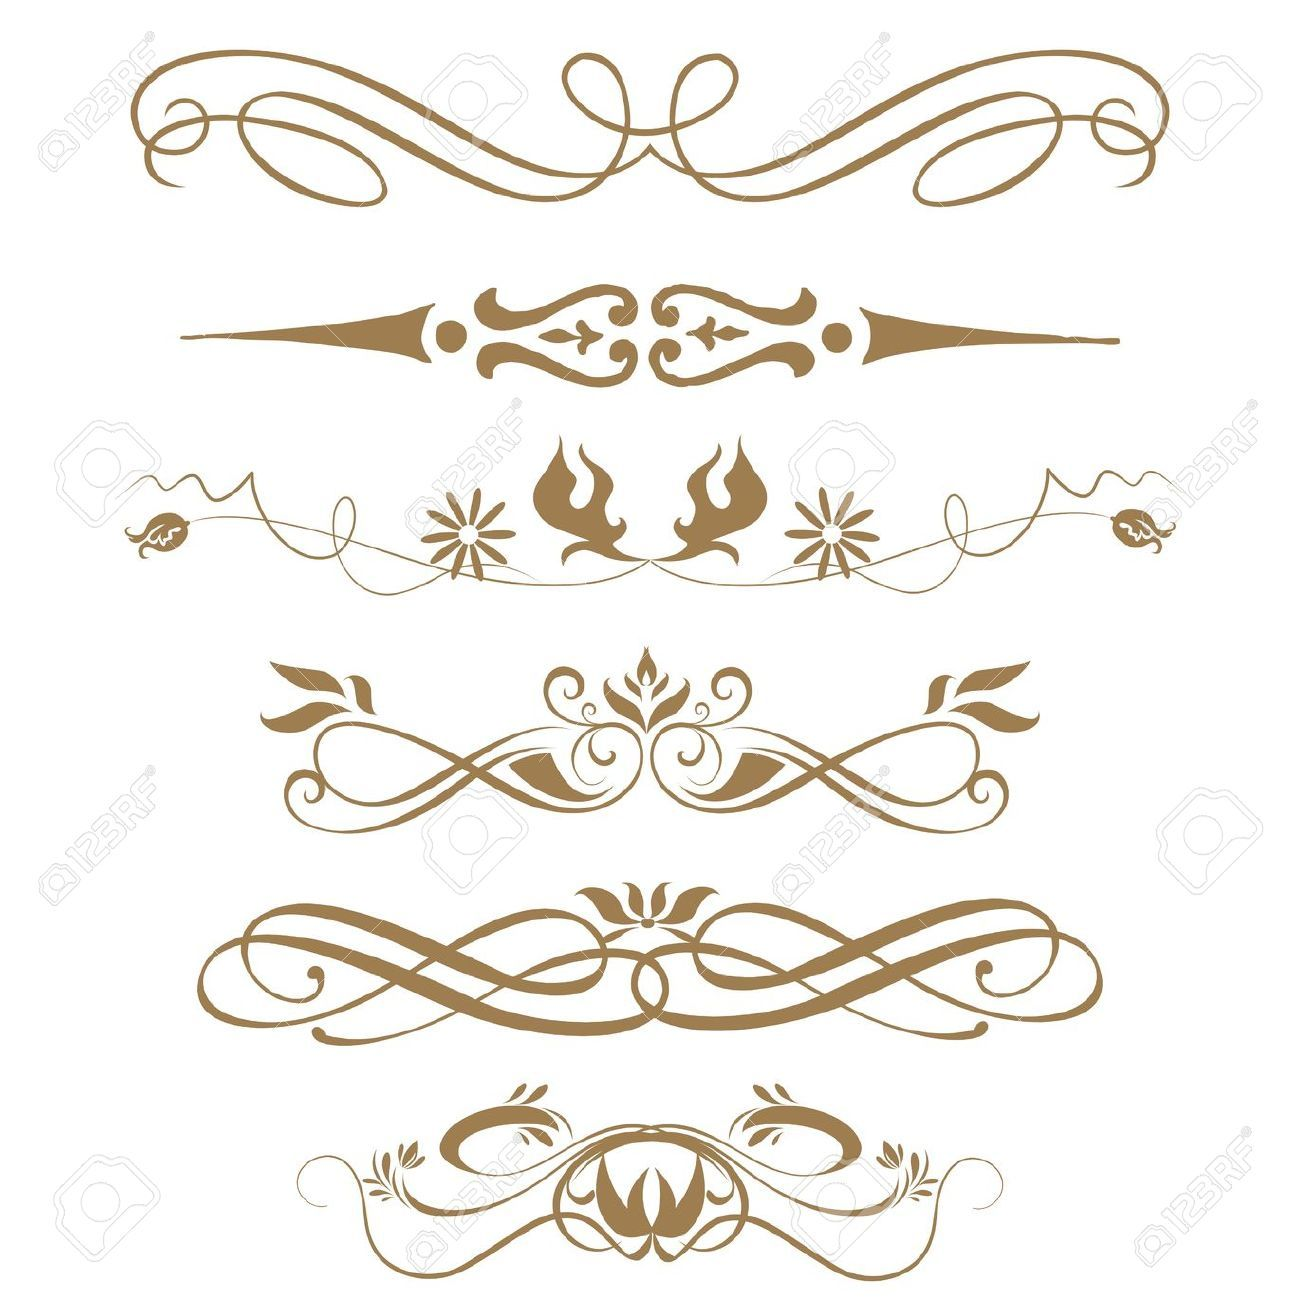 Medieval calligraphy border designs google search